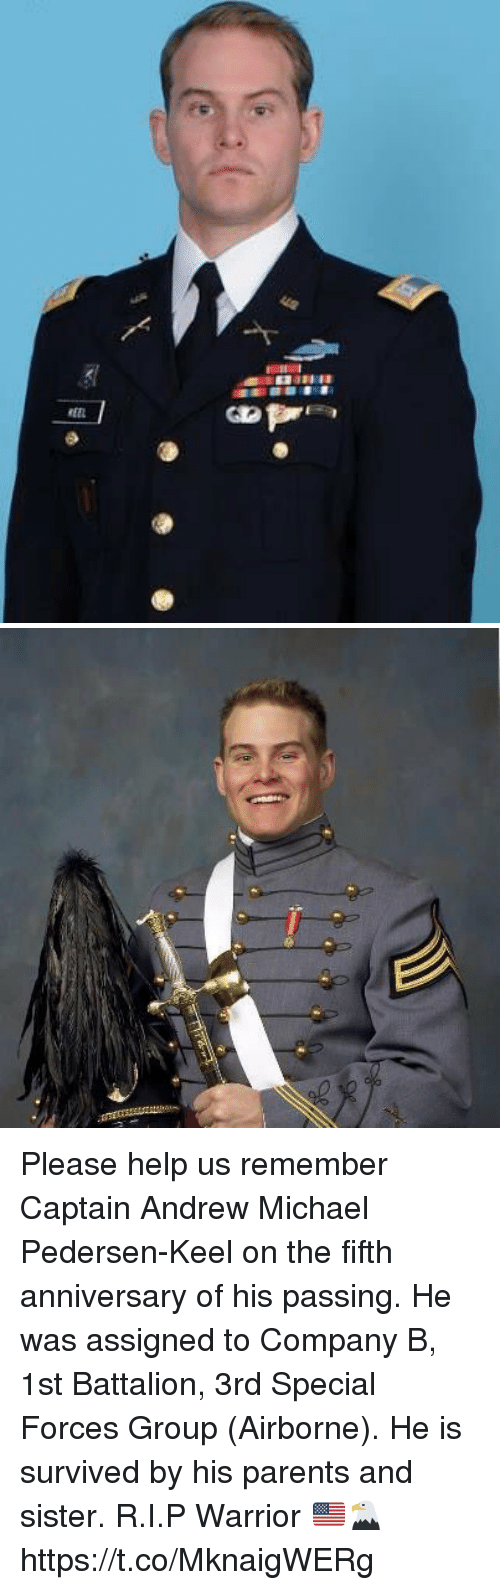 Memes, Parents, and Help: Please help us remember Captain Andrew Michael Pedersen-Keel on the fifth anniversary of his passing. He was assigned to Company B, 1st Battalion, 3rd Special Forces Group (Airborne). He is survived by his parents and sister. R.I.P Warrior 🇺🇸🦅 https://t.co/MknaigWERg